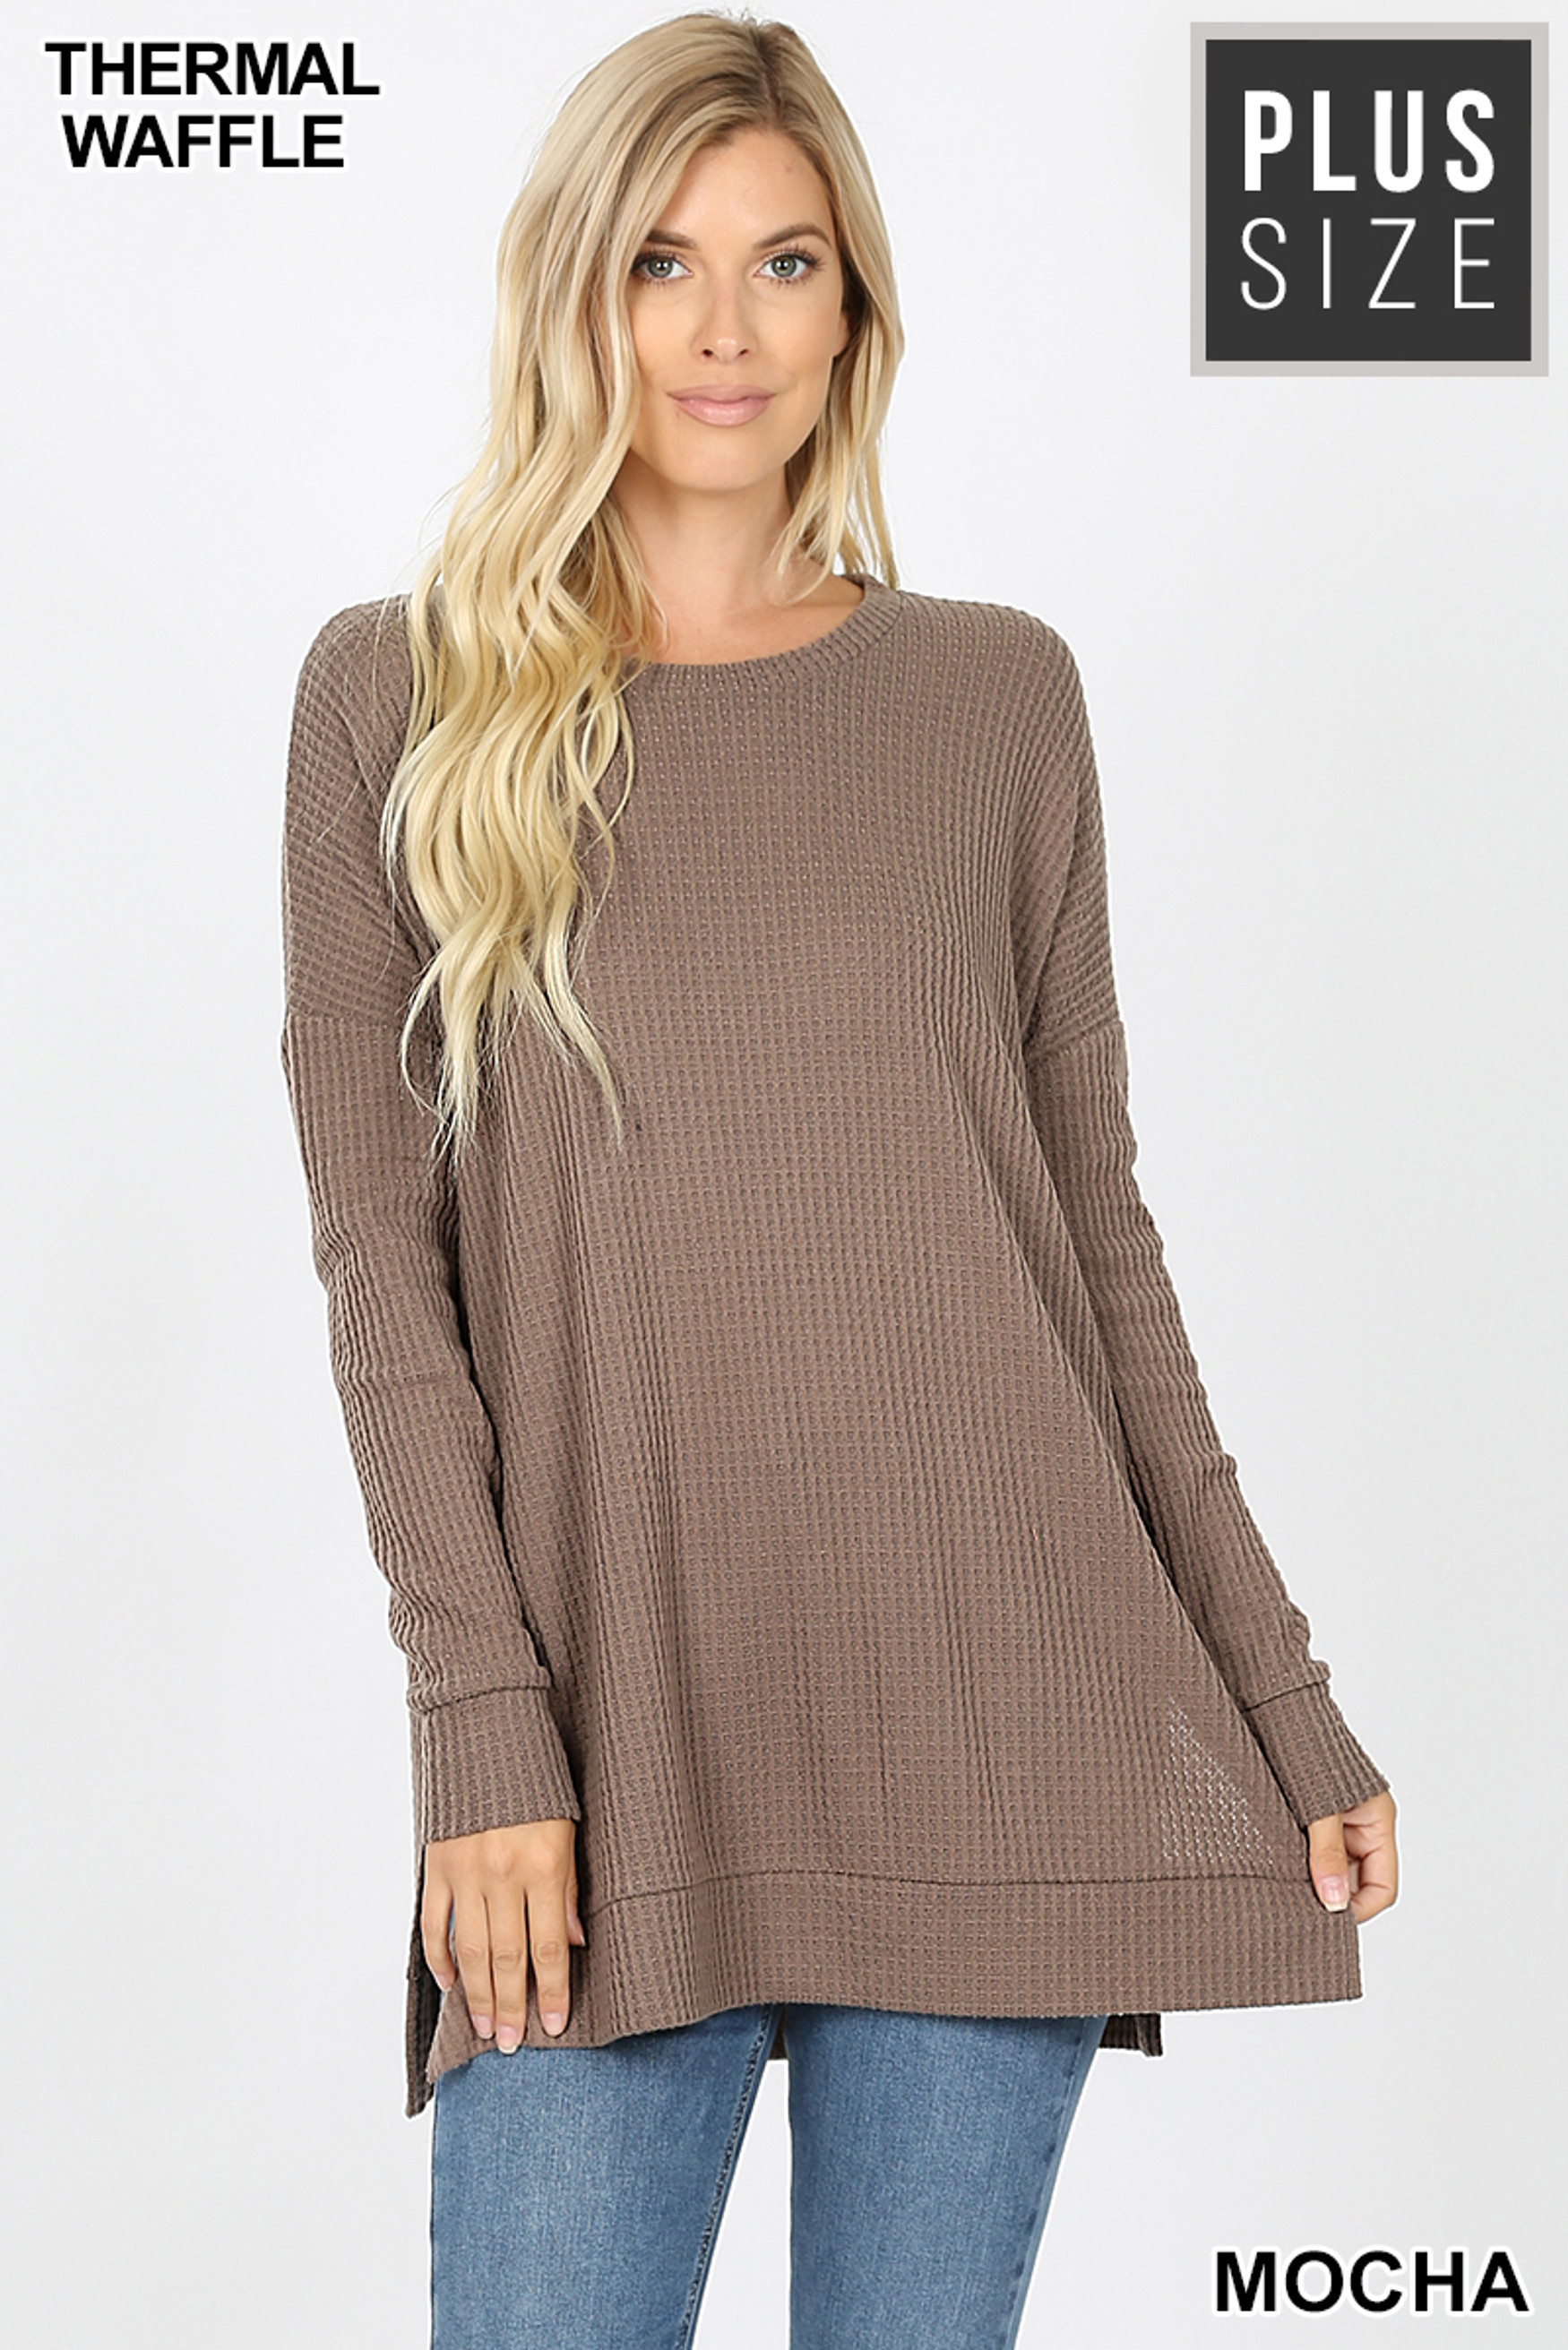 Front image of Mocha Brushed Thermal Waffle Knit Round Neck Plus Size Sweater